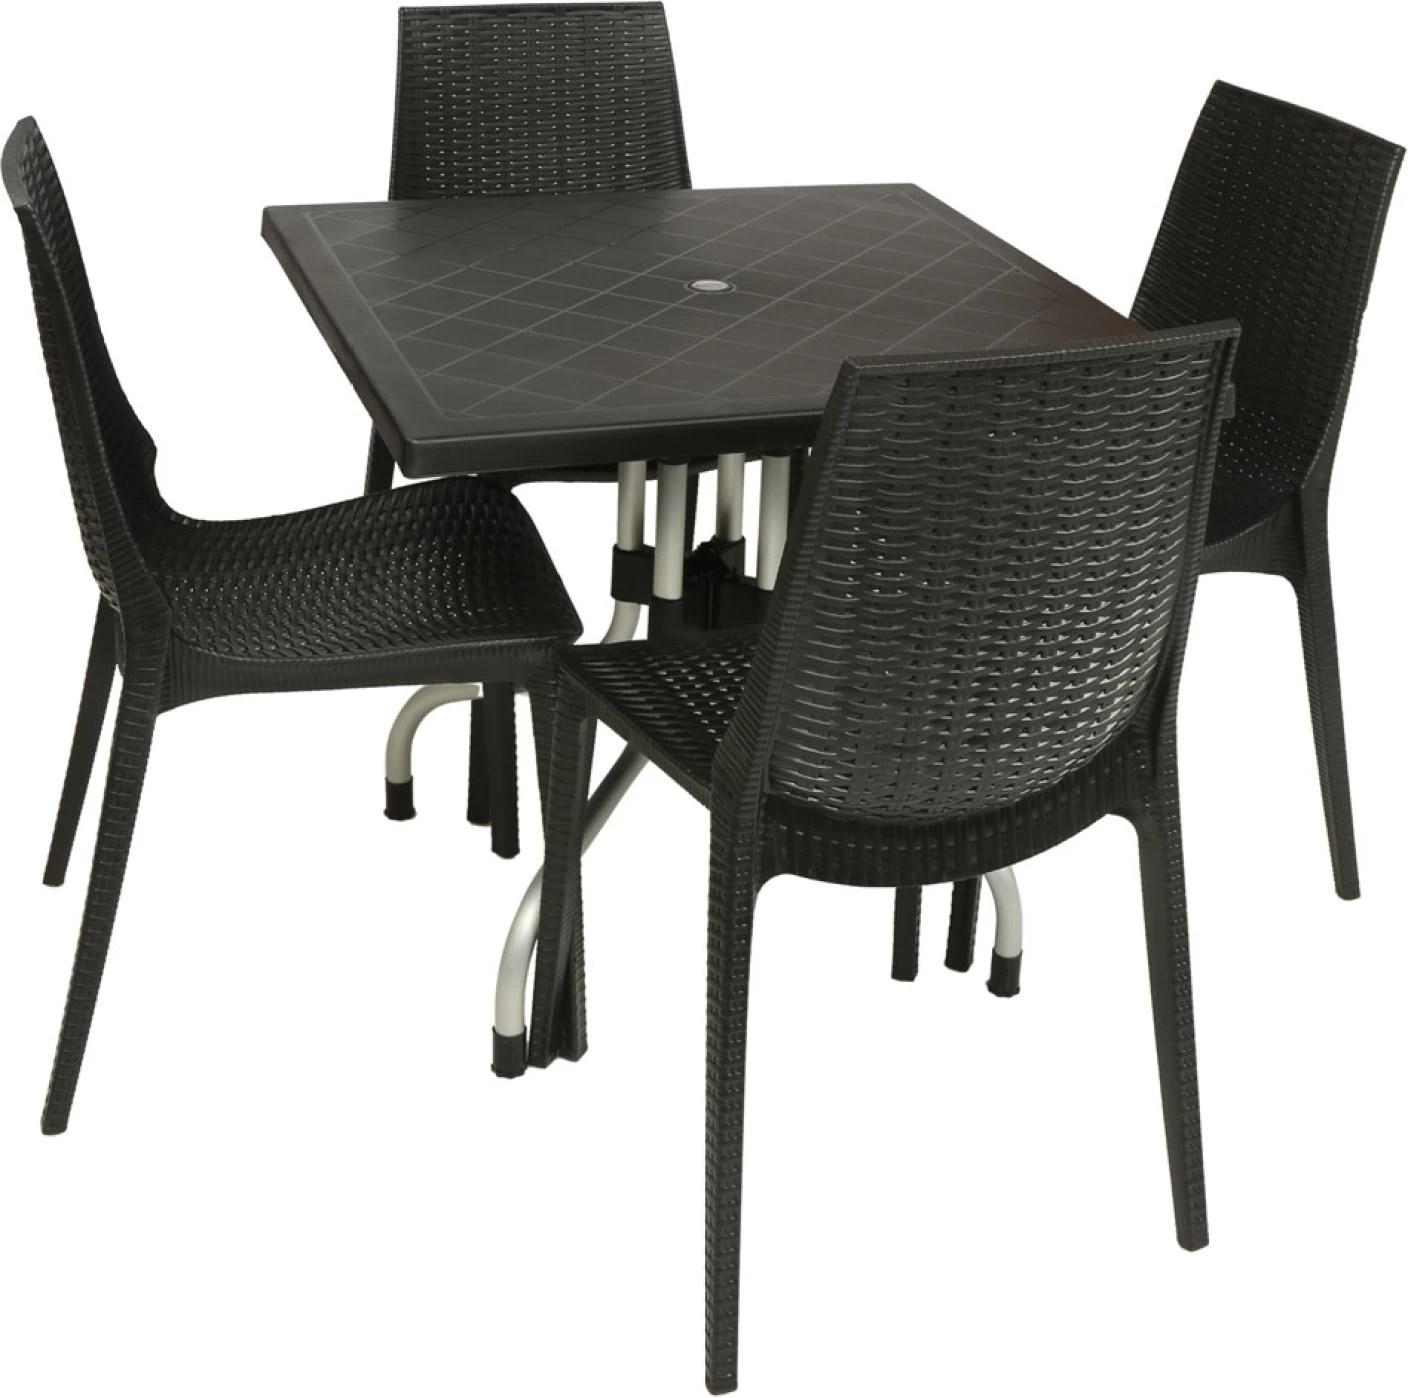 Supreme Furniture Chairs Price Supreme Wenge Plastic Table And Chair Set Price In India